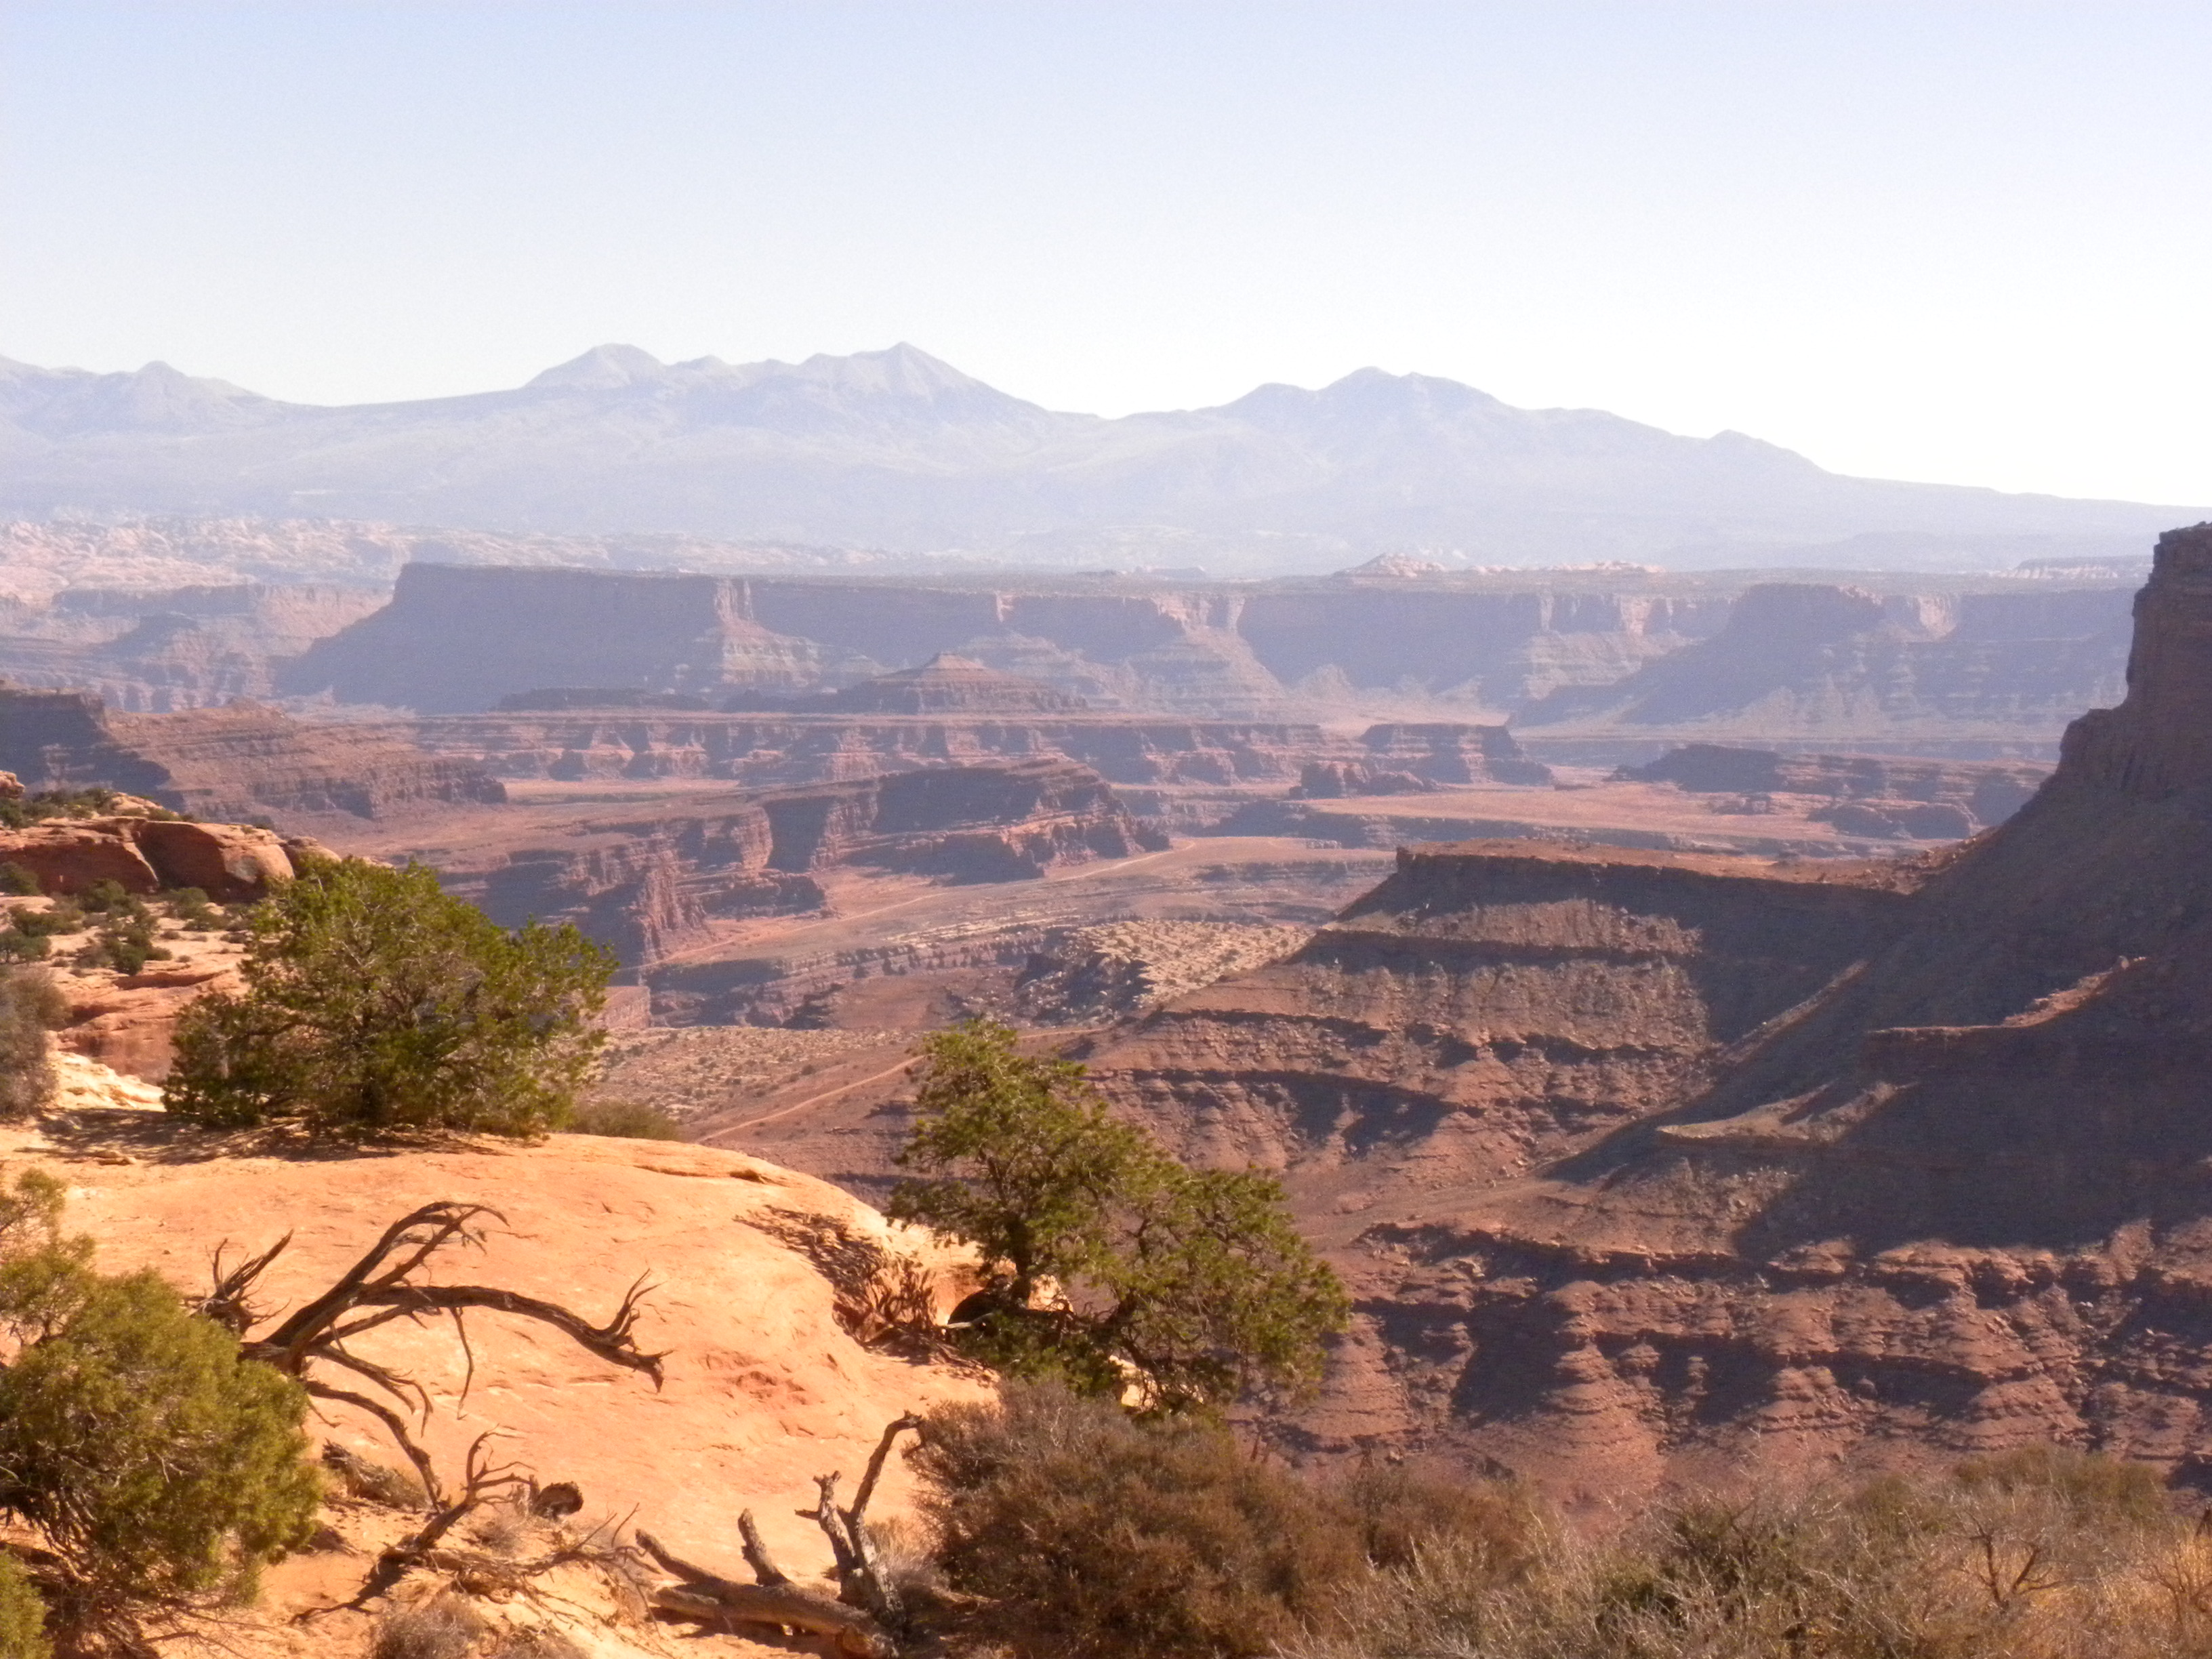 One view of Canyonlands